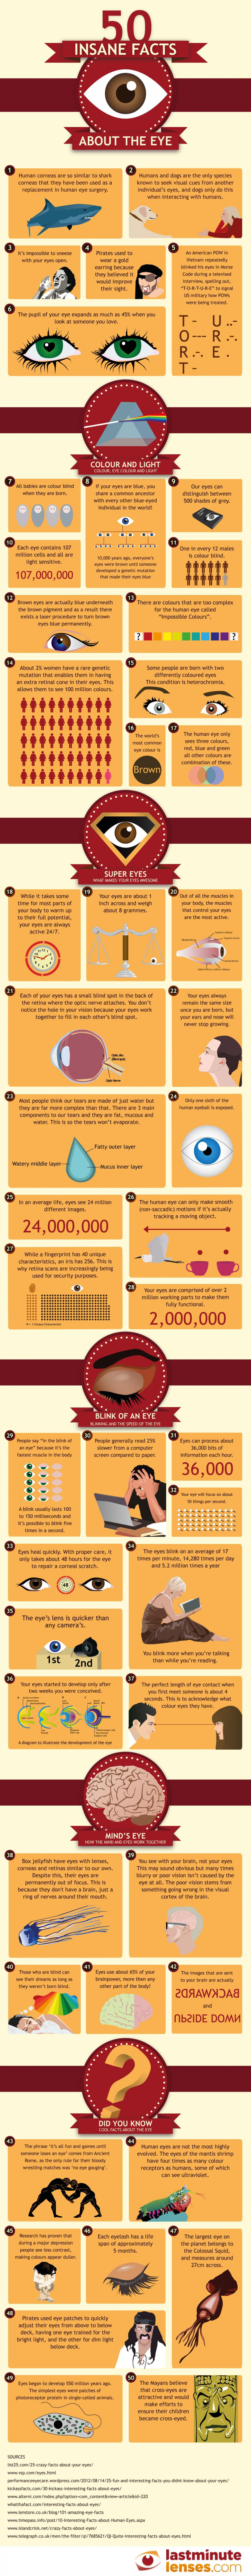 50-insane-facts-about-the-eye_5304c1ab5e664_w1500